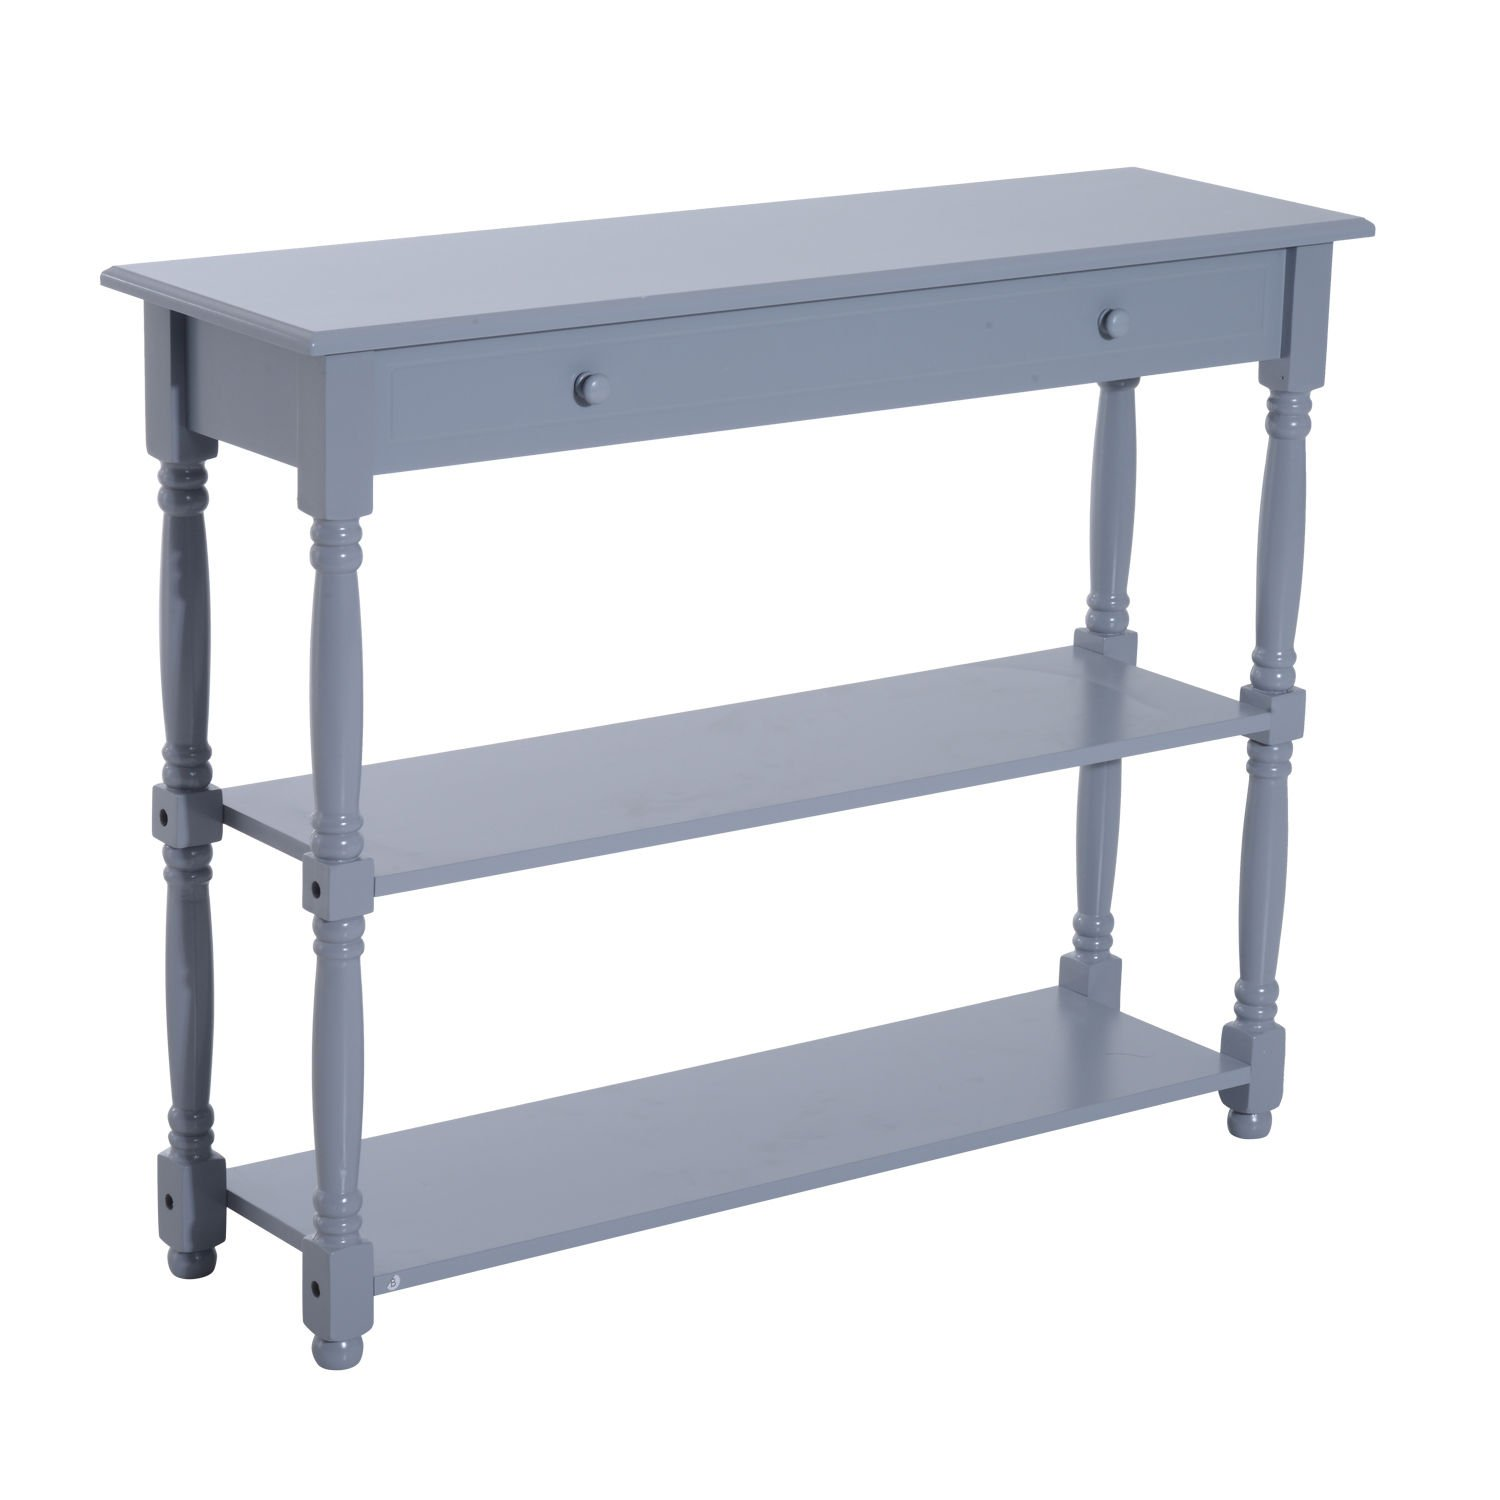 New Grey Console Table Wood Entryway Sofa Accent Hallway Living Room Furniture by Generic